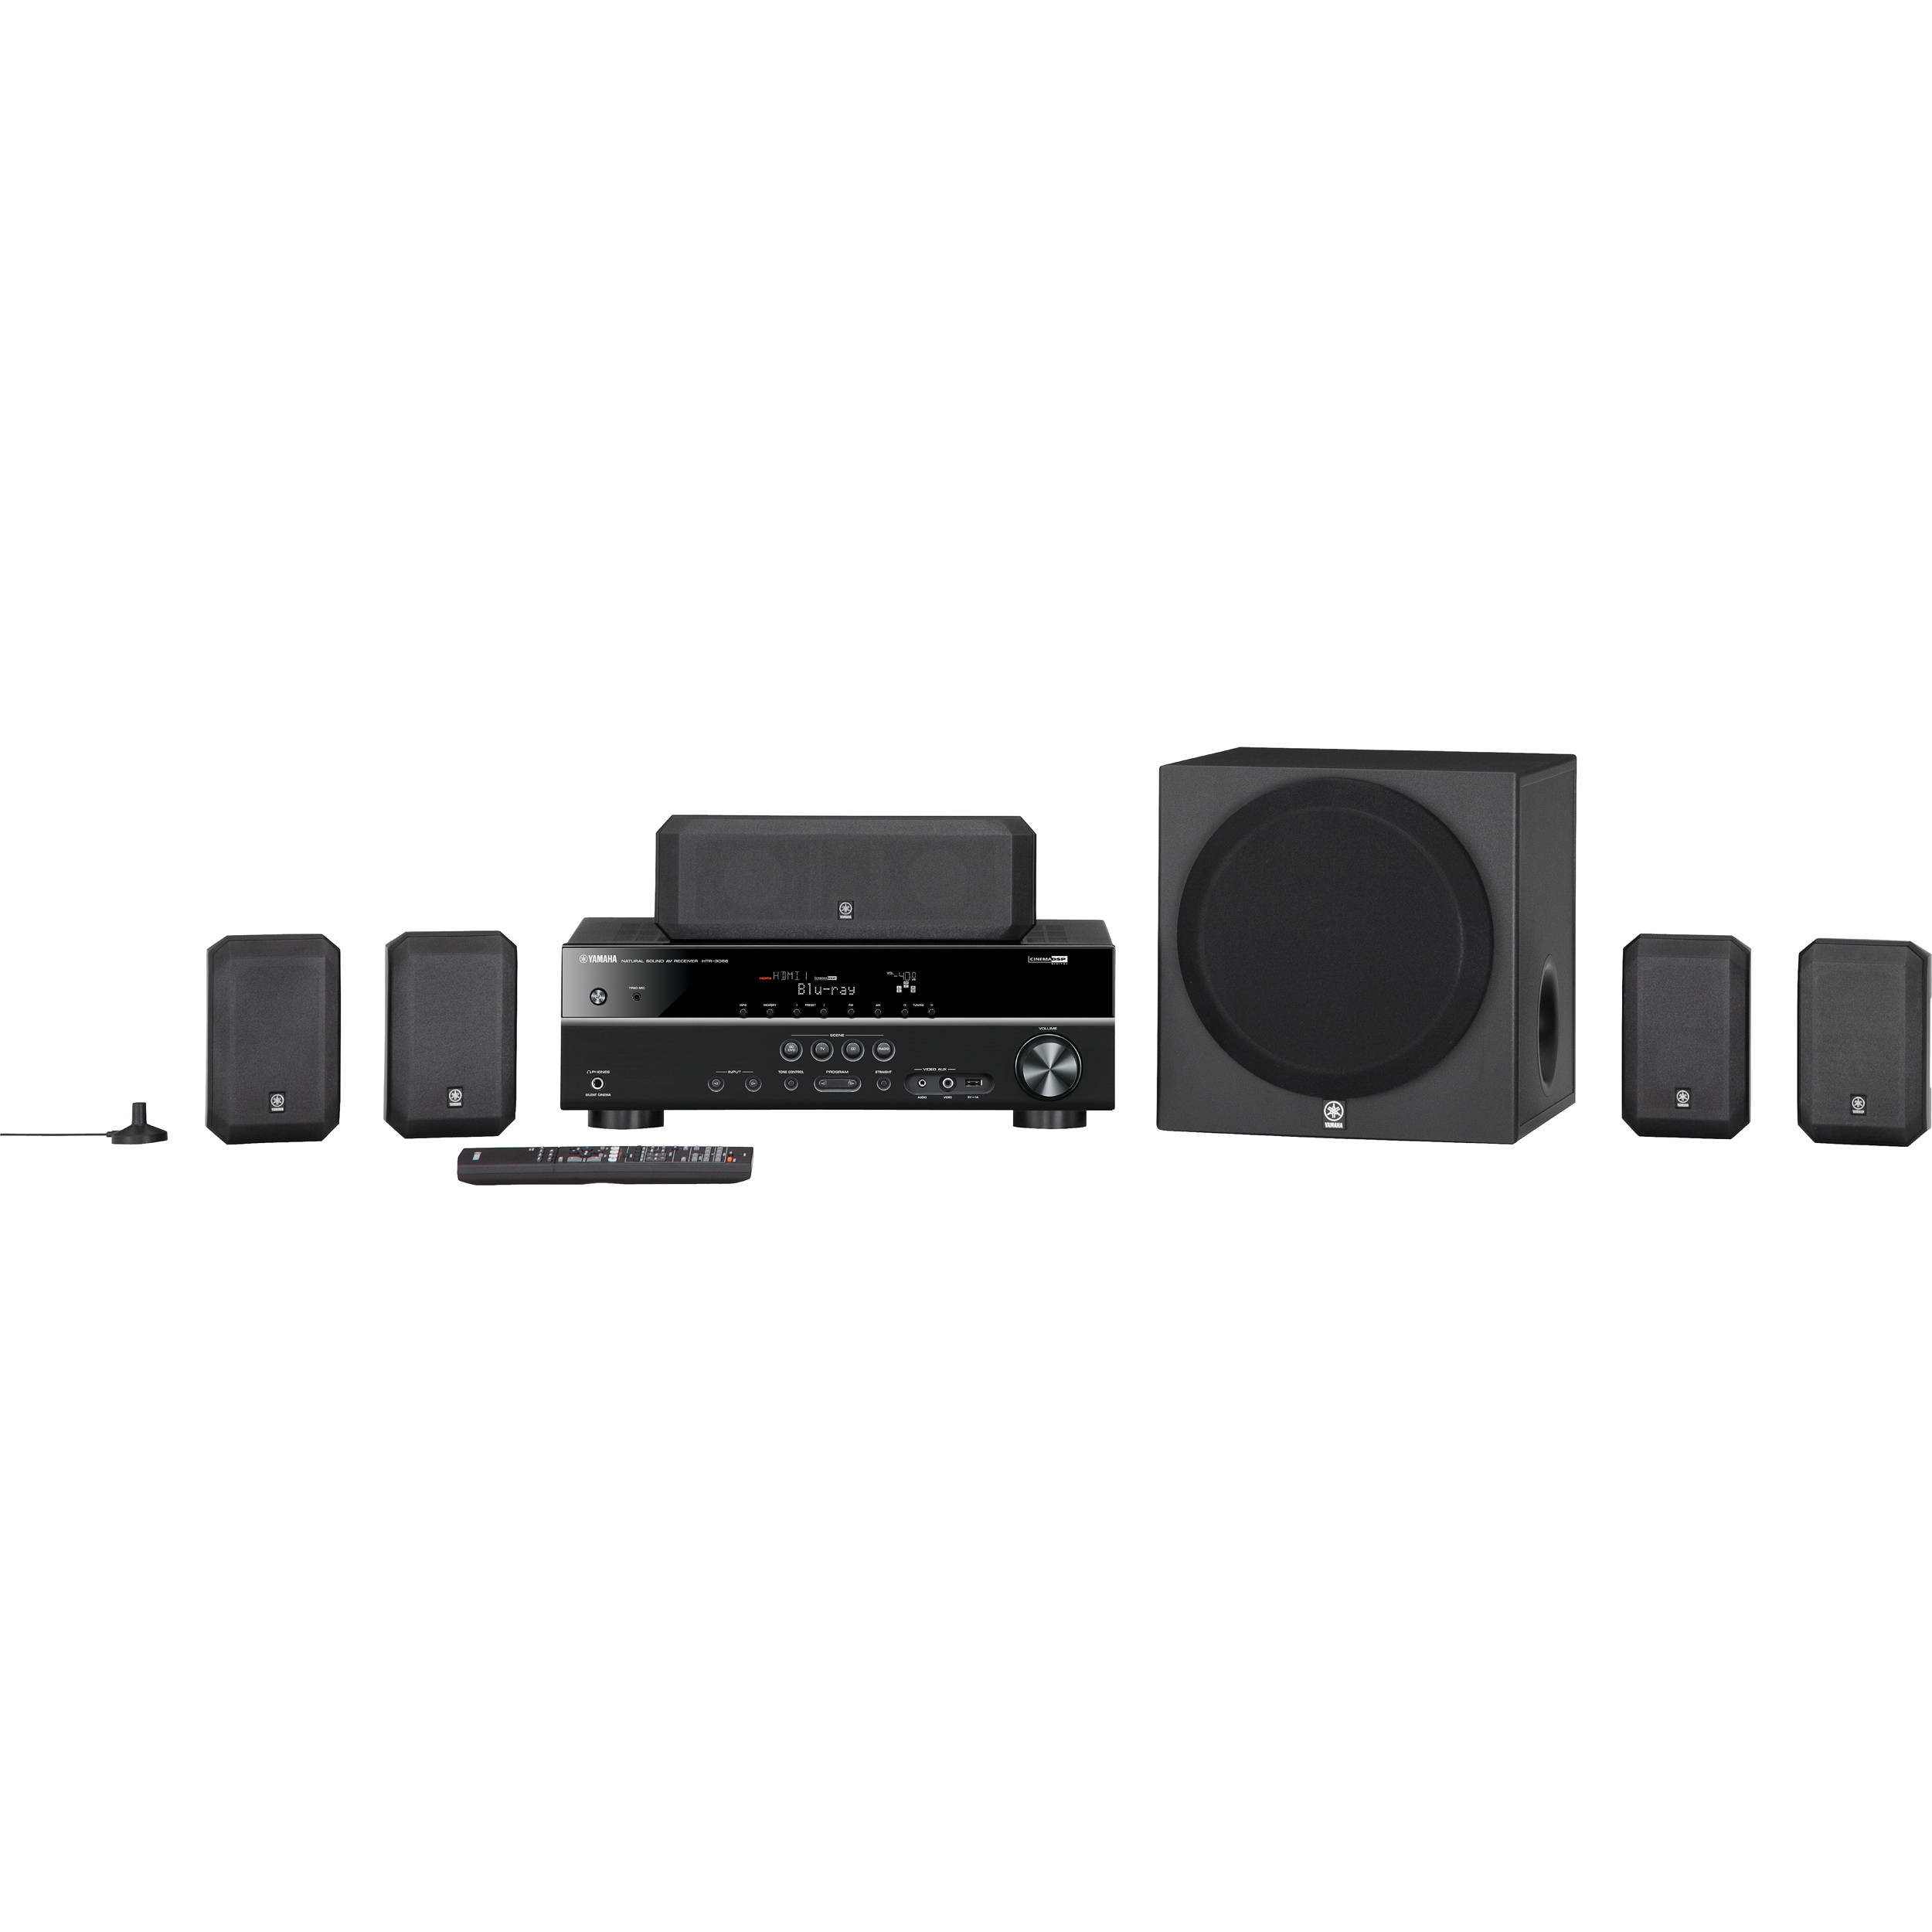 Yamaha yht 399ubl 5 1 channel home theater in a box yht 399ubl for Home theater yamaha